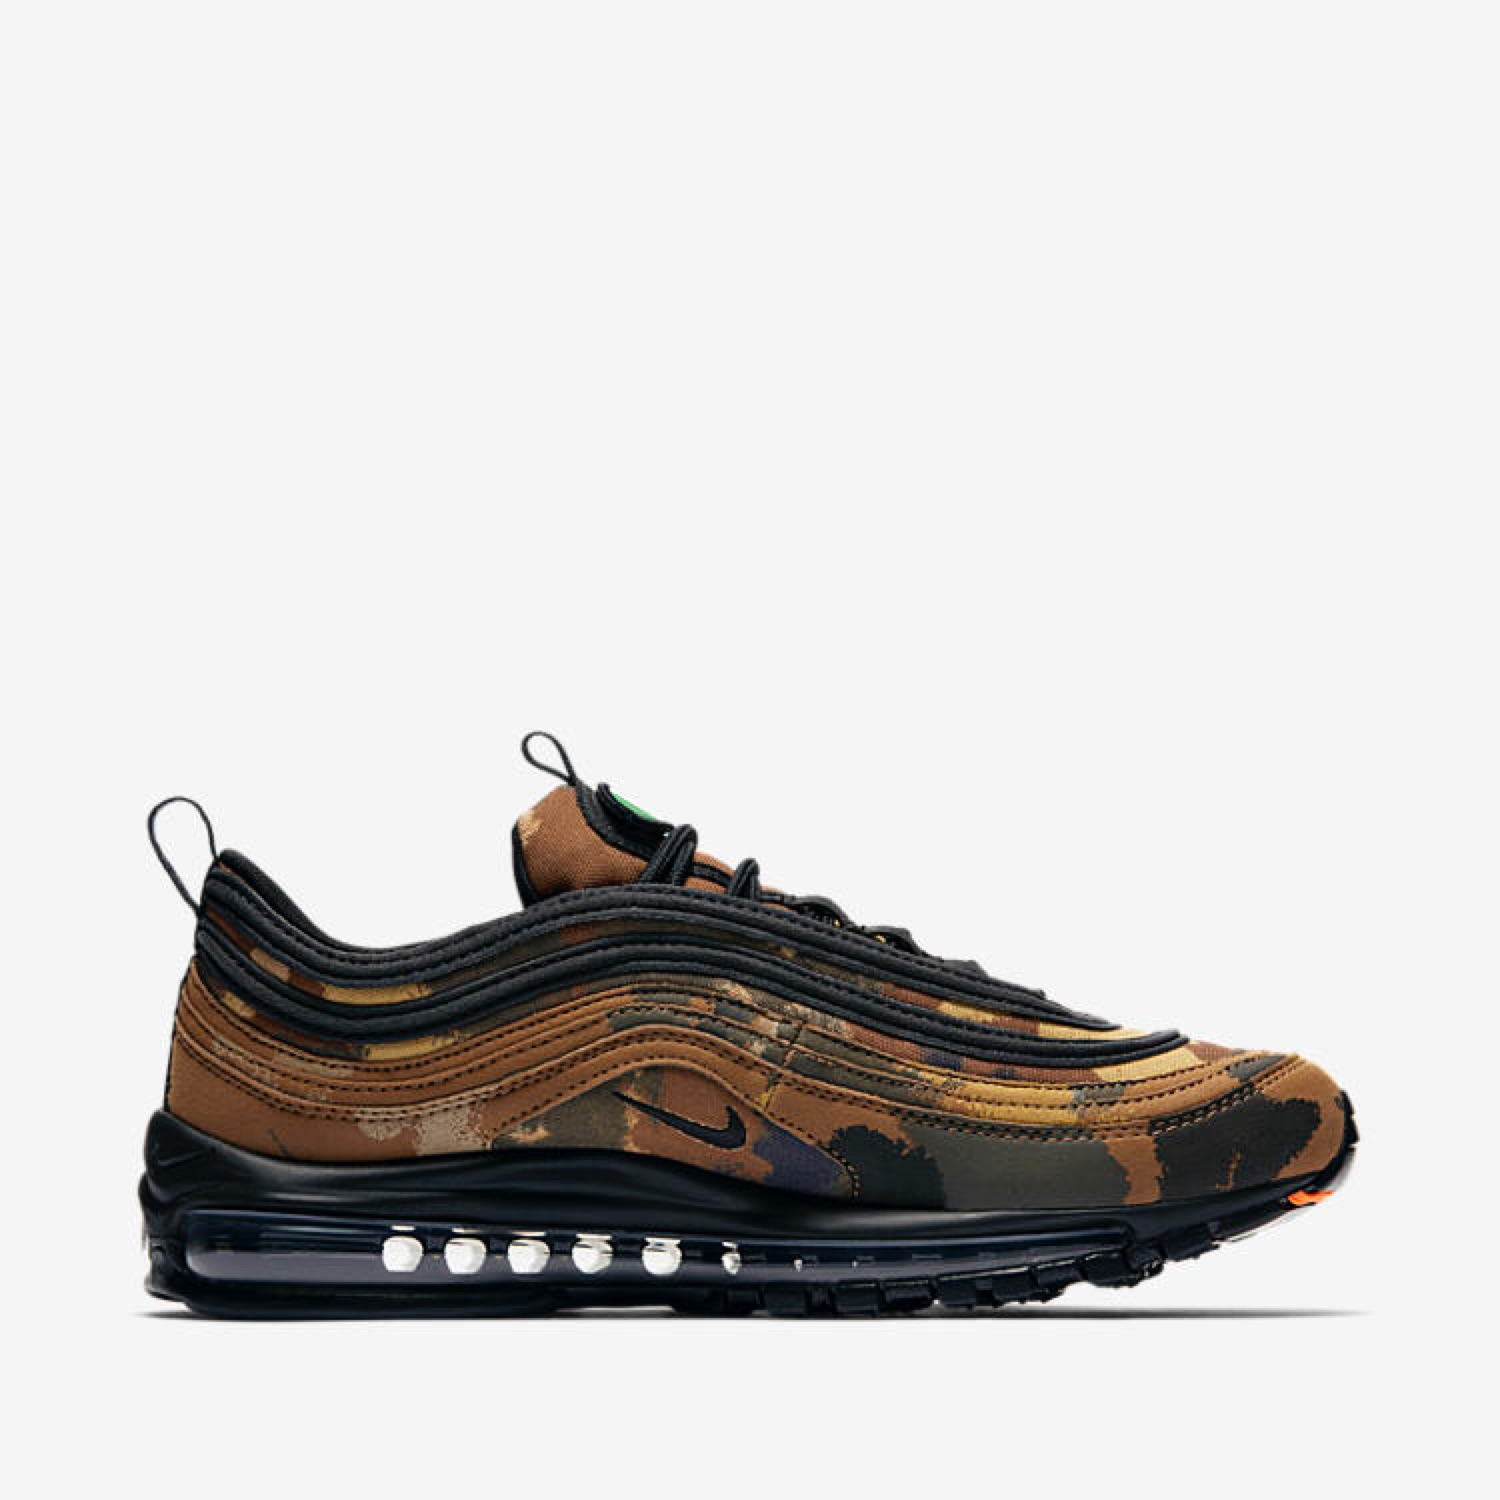 01c74e6a13 Nike Air Max 97 Country Camo Italy